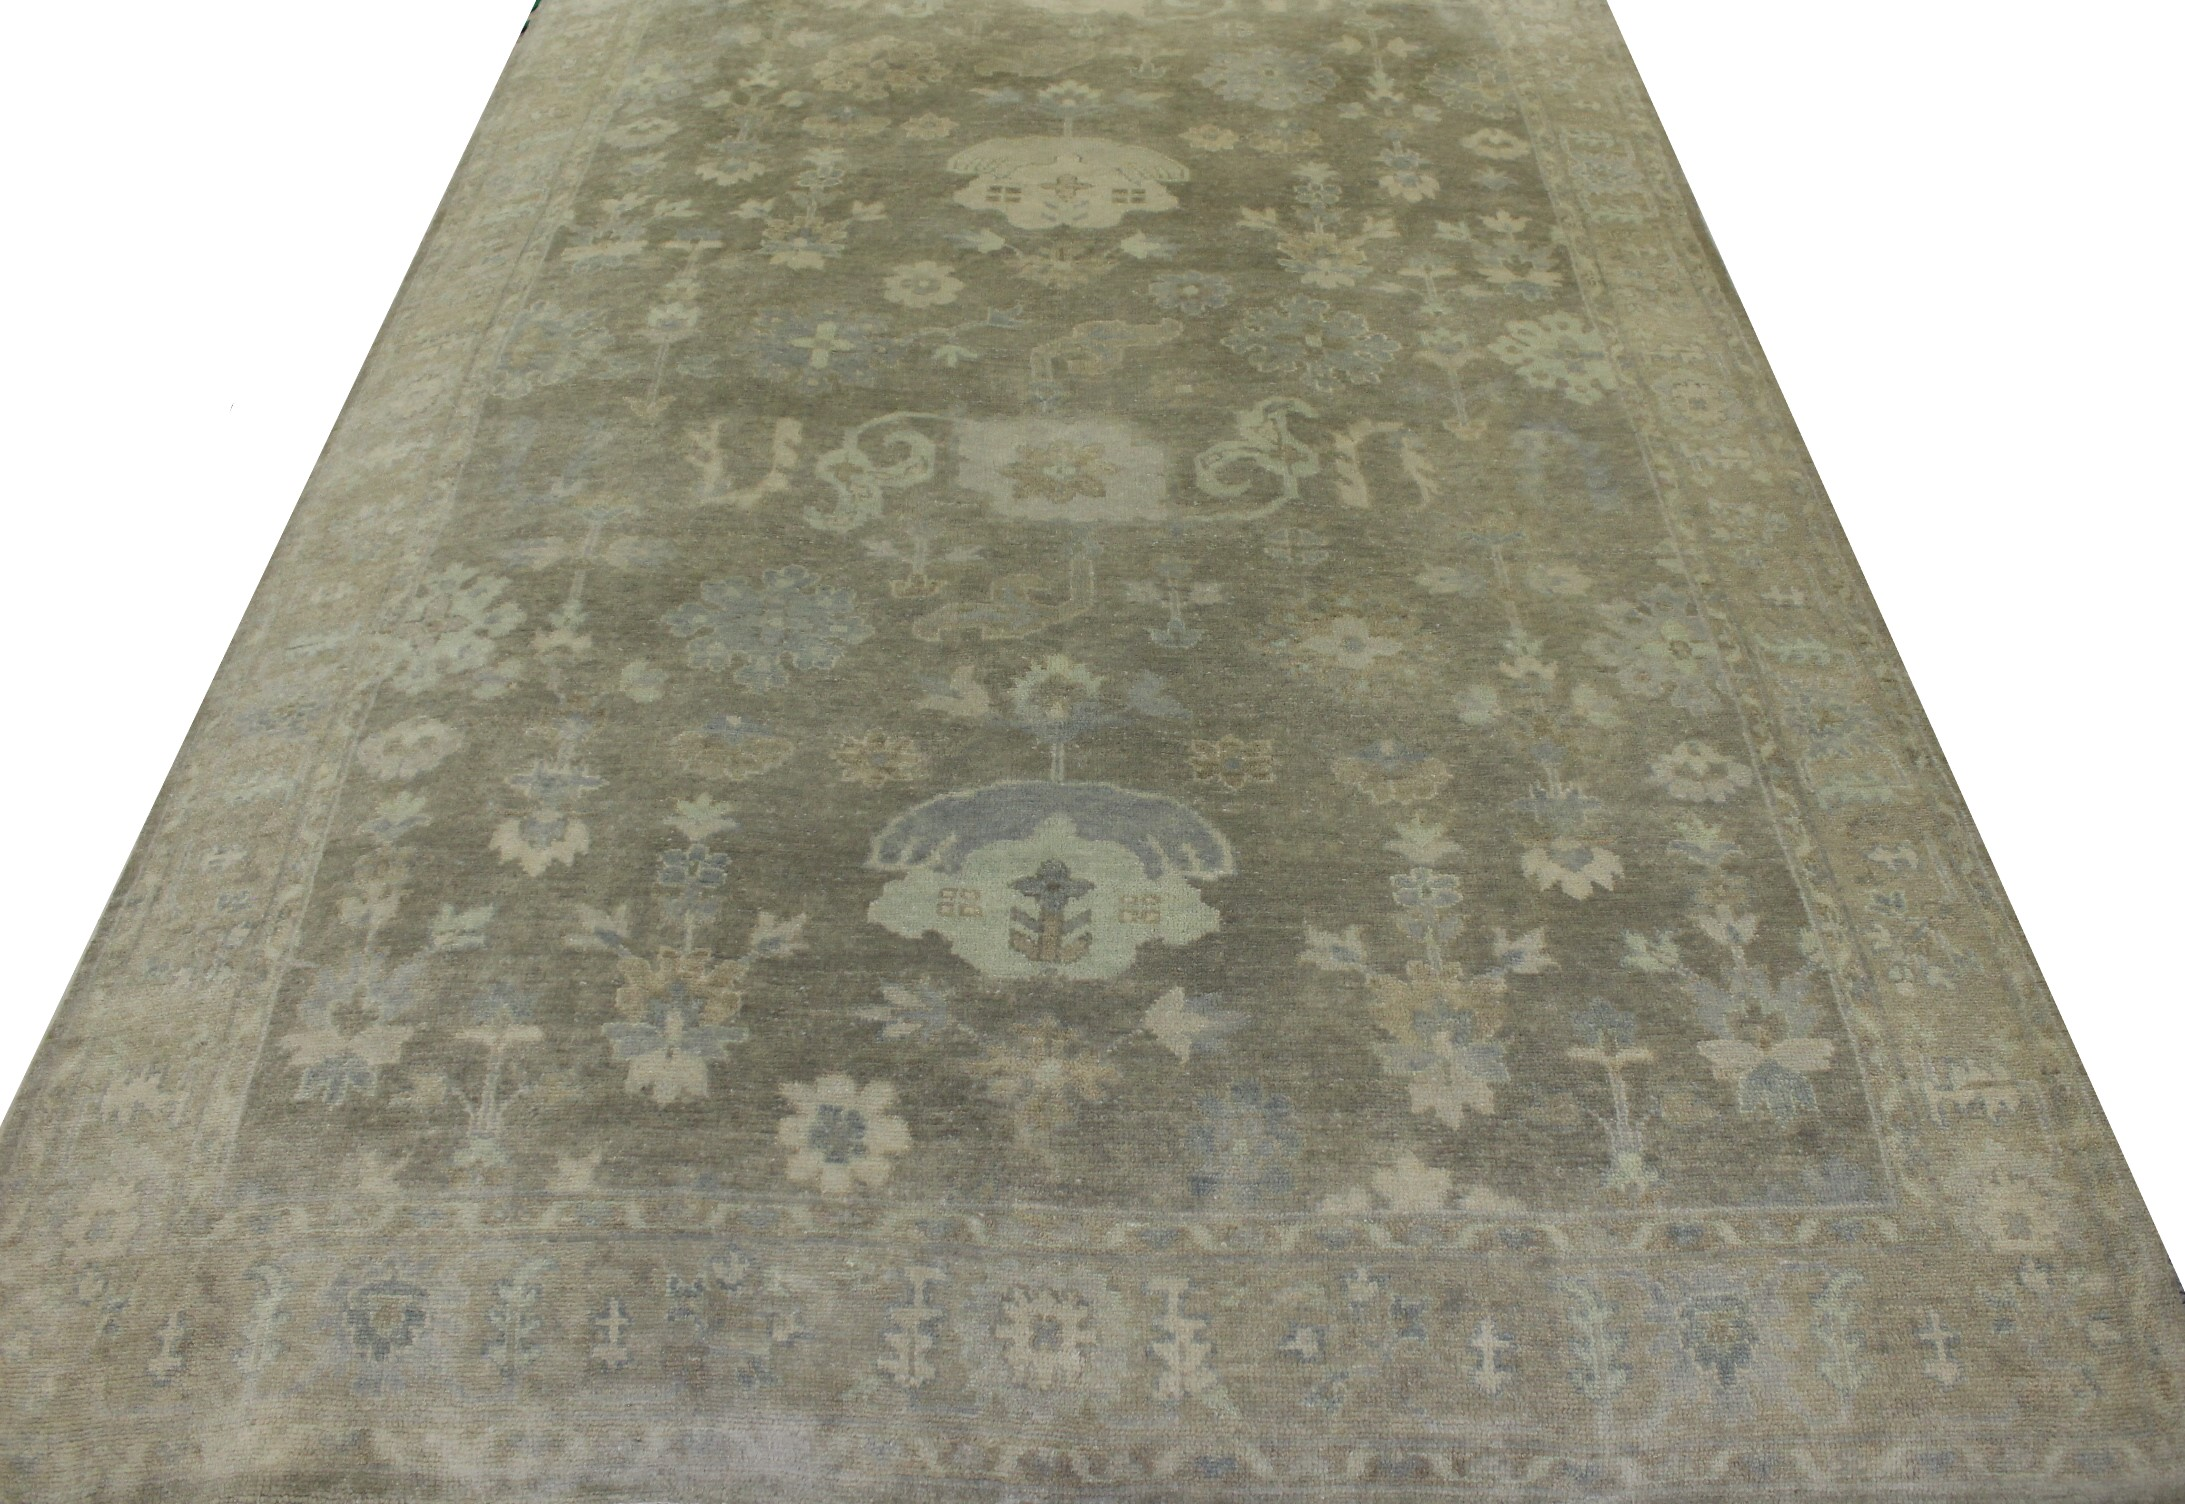 6x9 Oushak Hand Knotted Wool Area Rug - MR19765